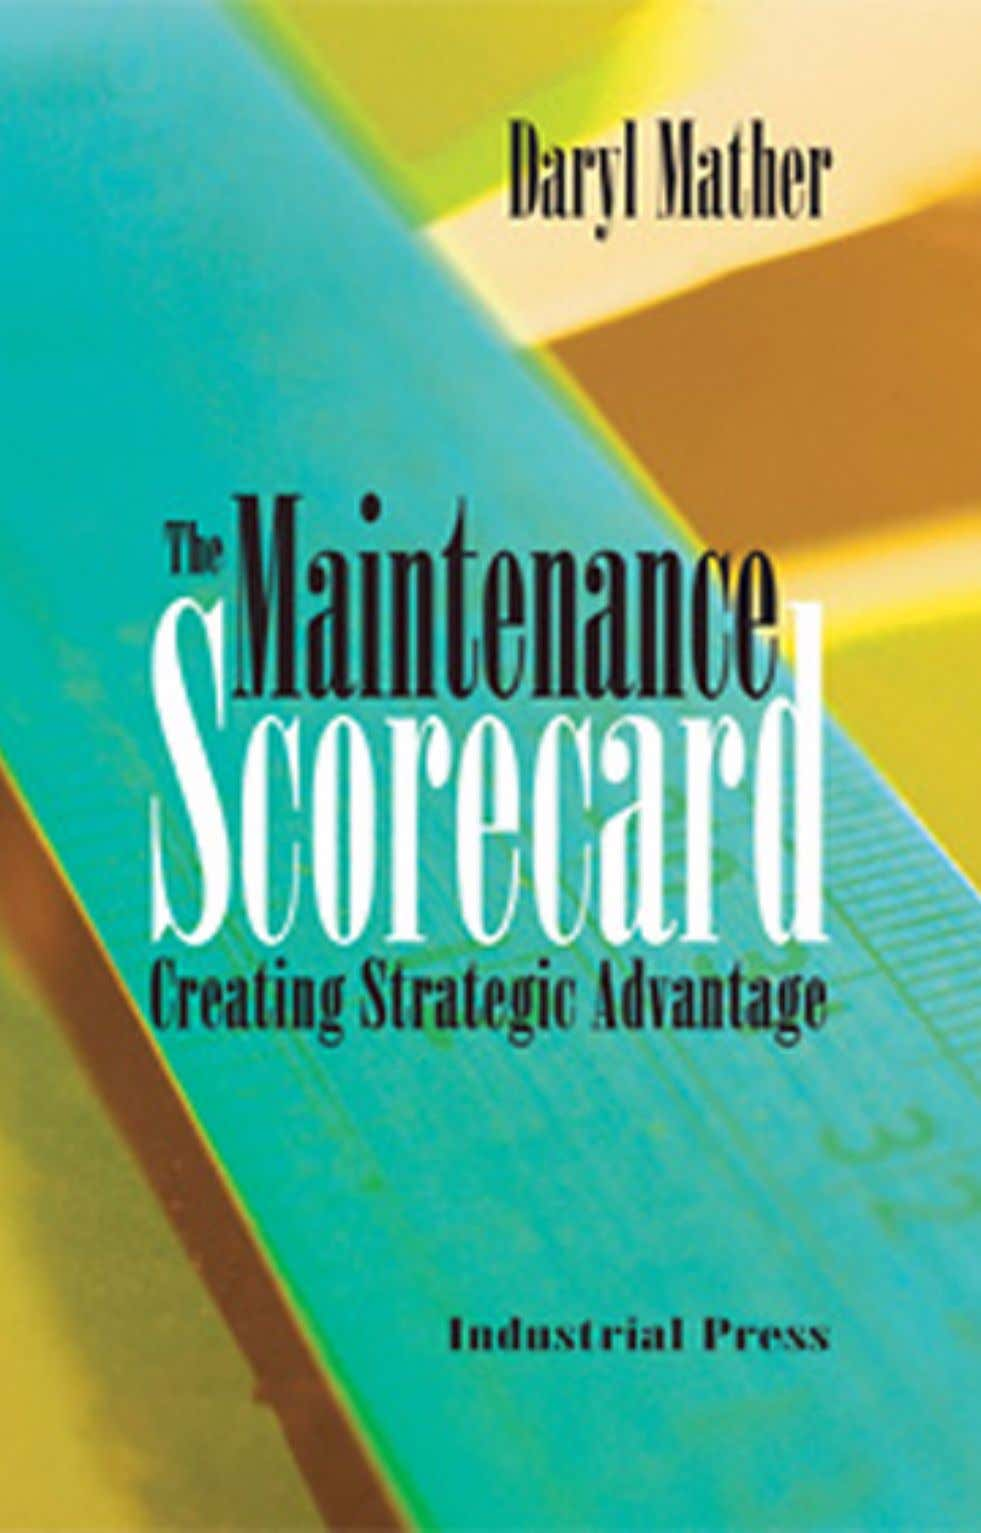 The Maintenance Scorecard Copyright 2005, Industrial Press, Inc., New York, NY